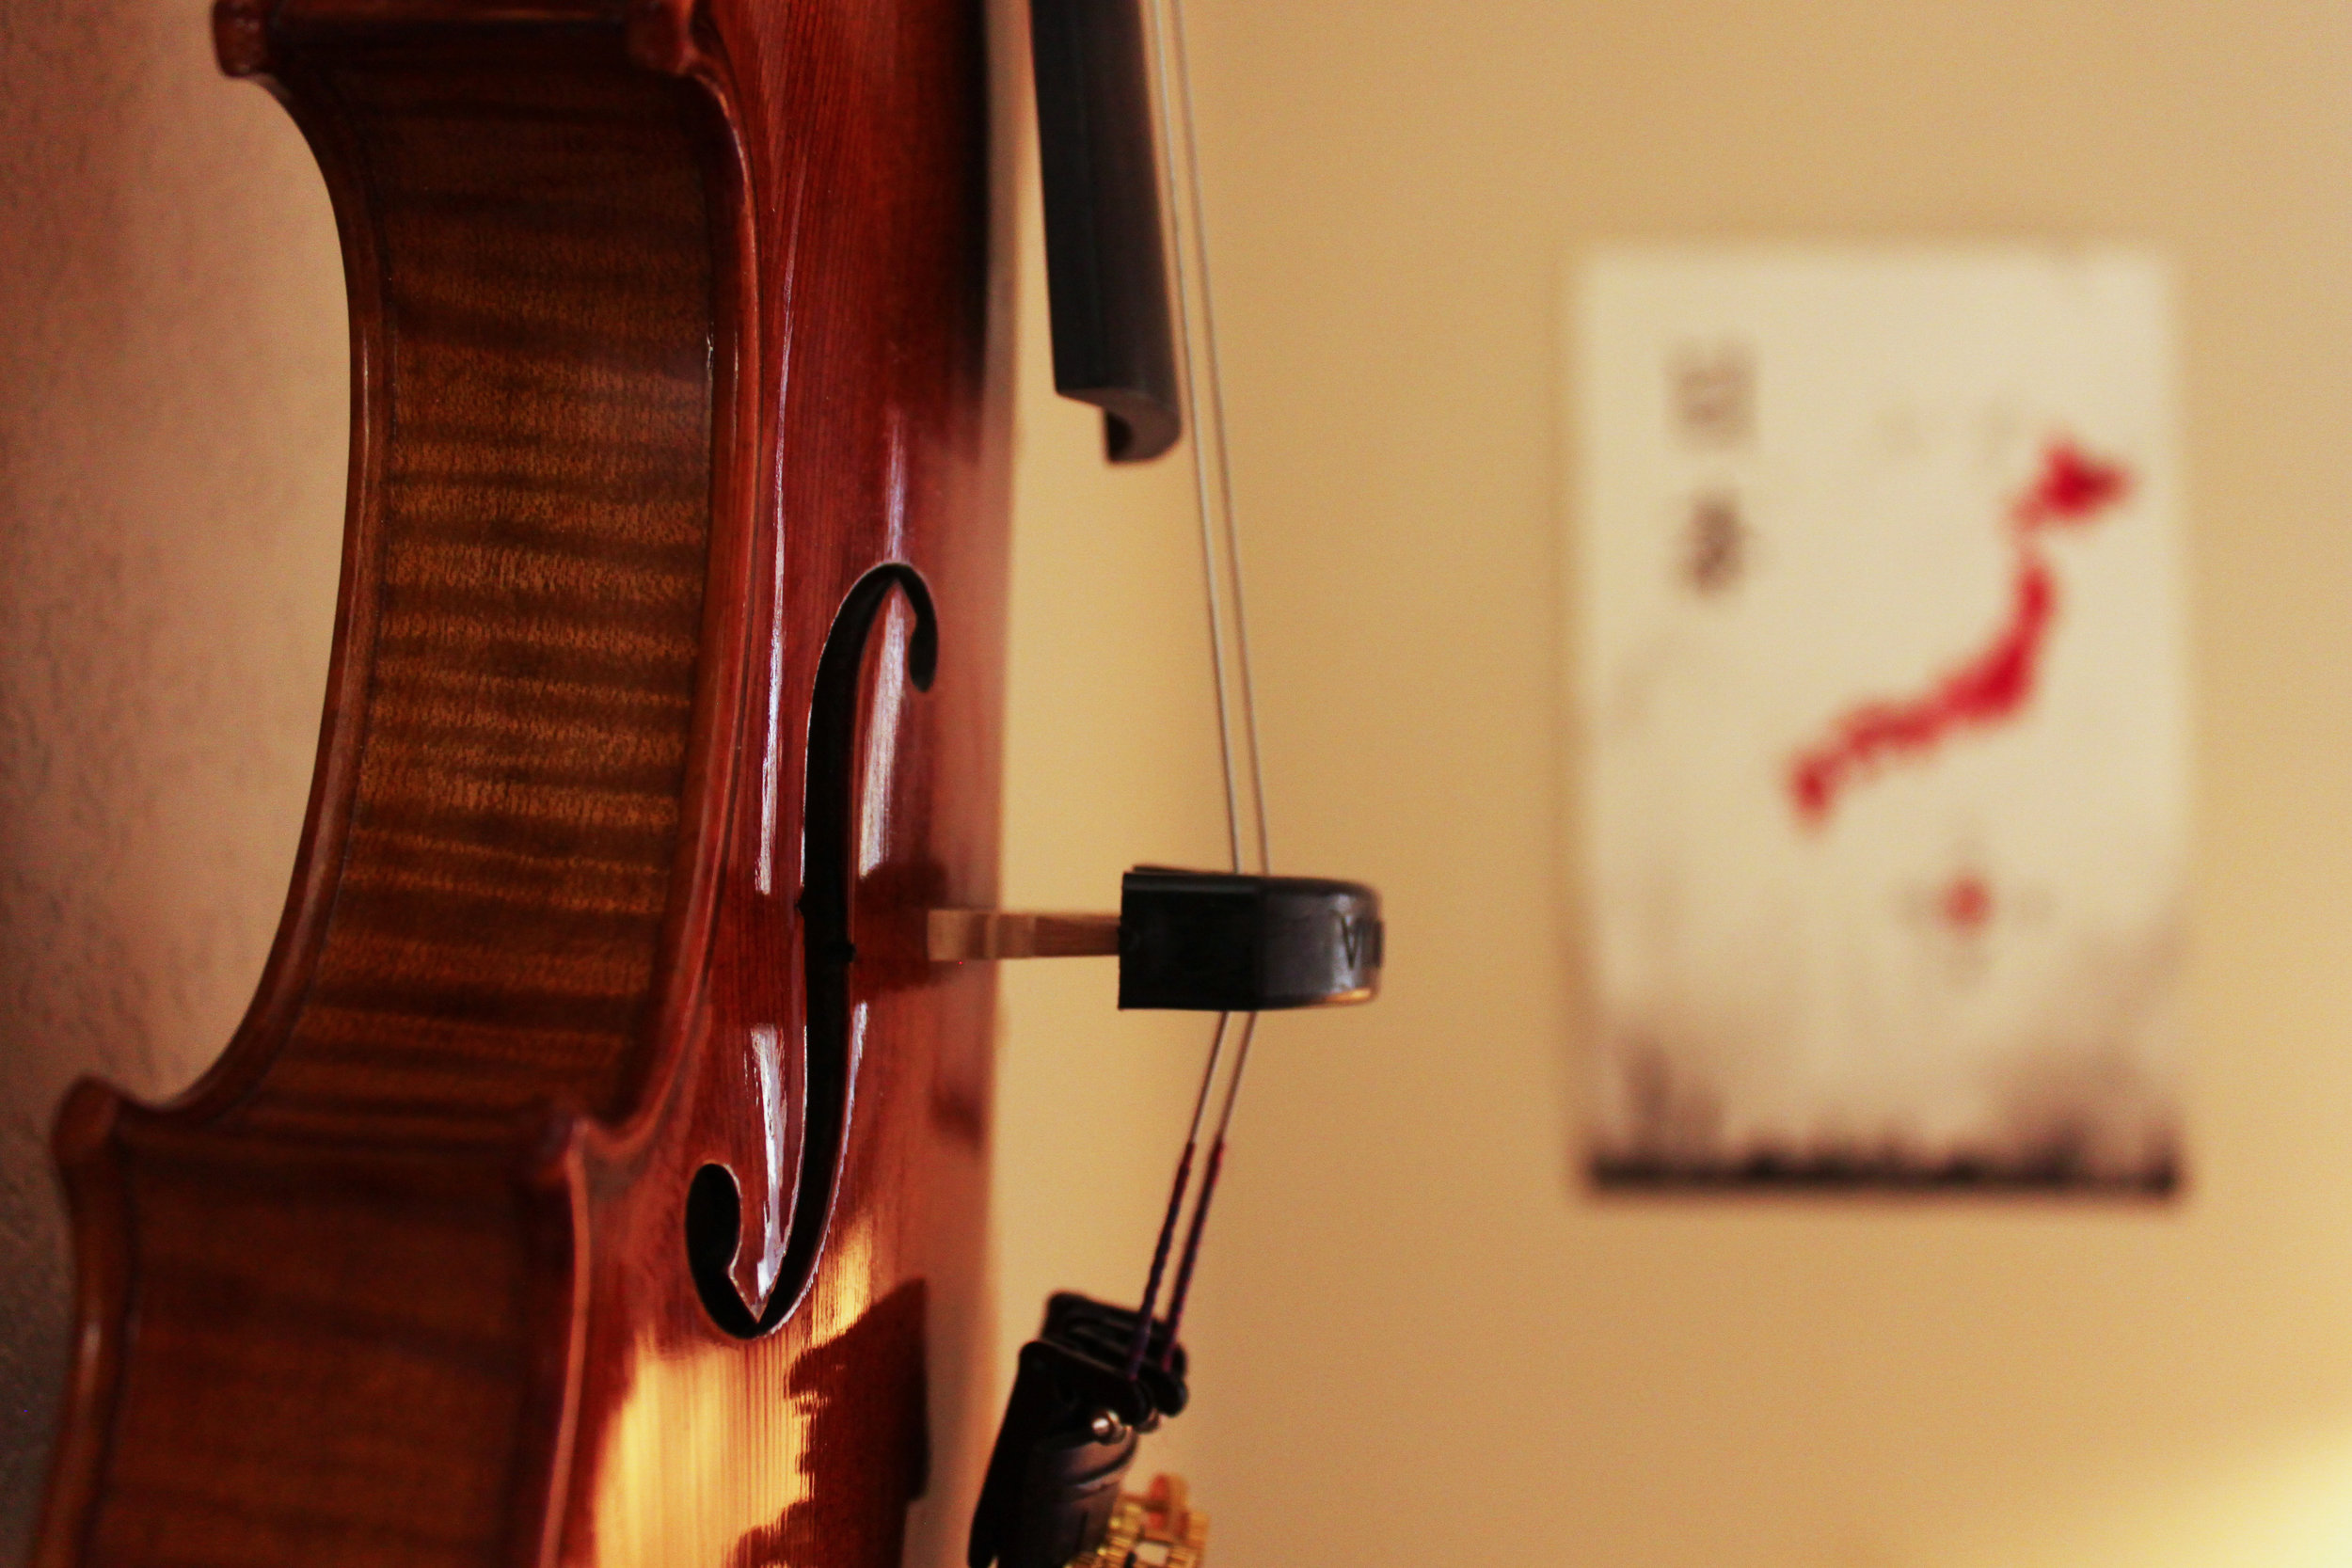 A violin hanging on the wall, serving as art and hobby.